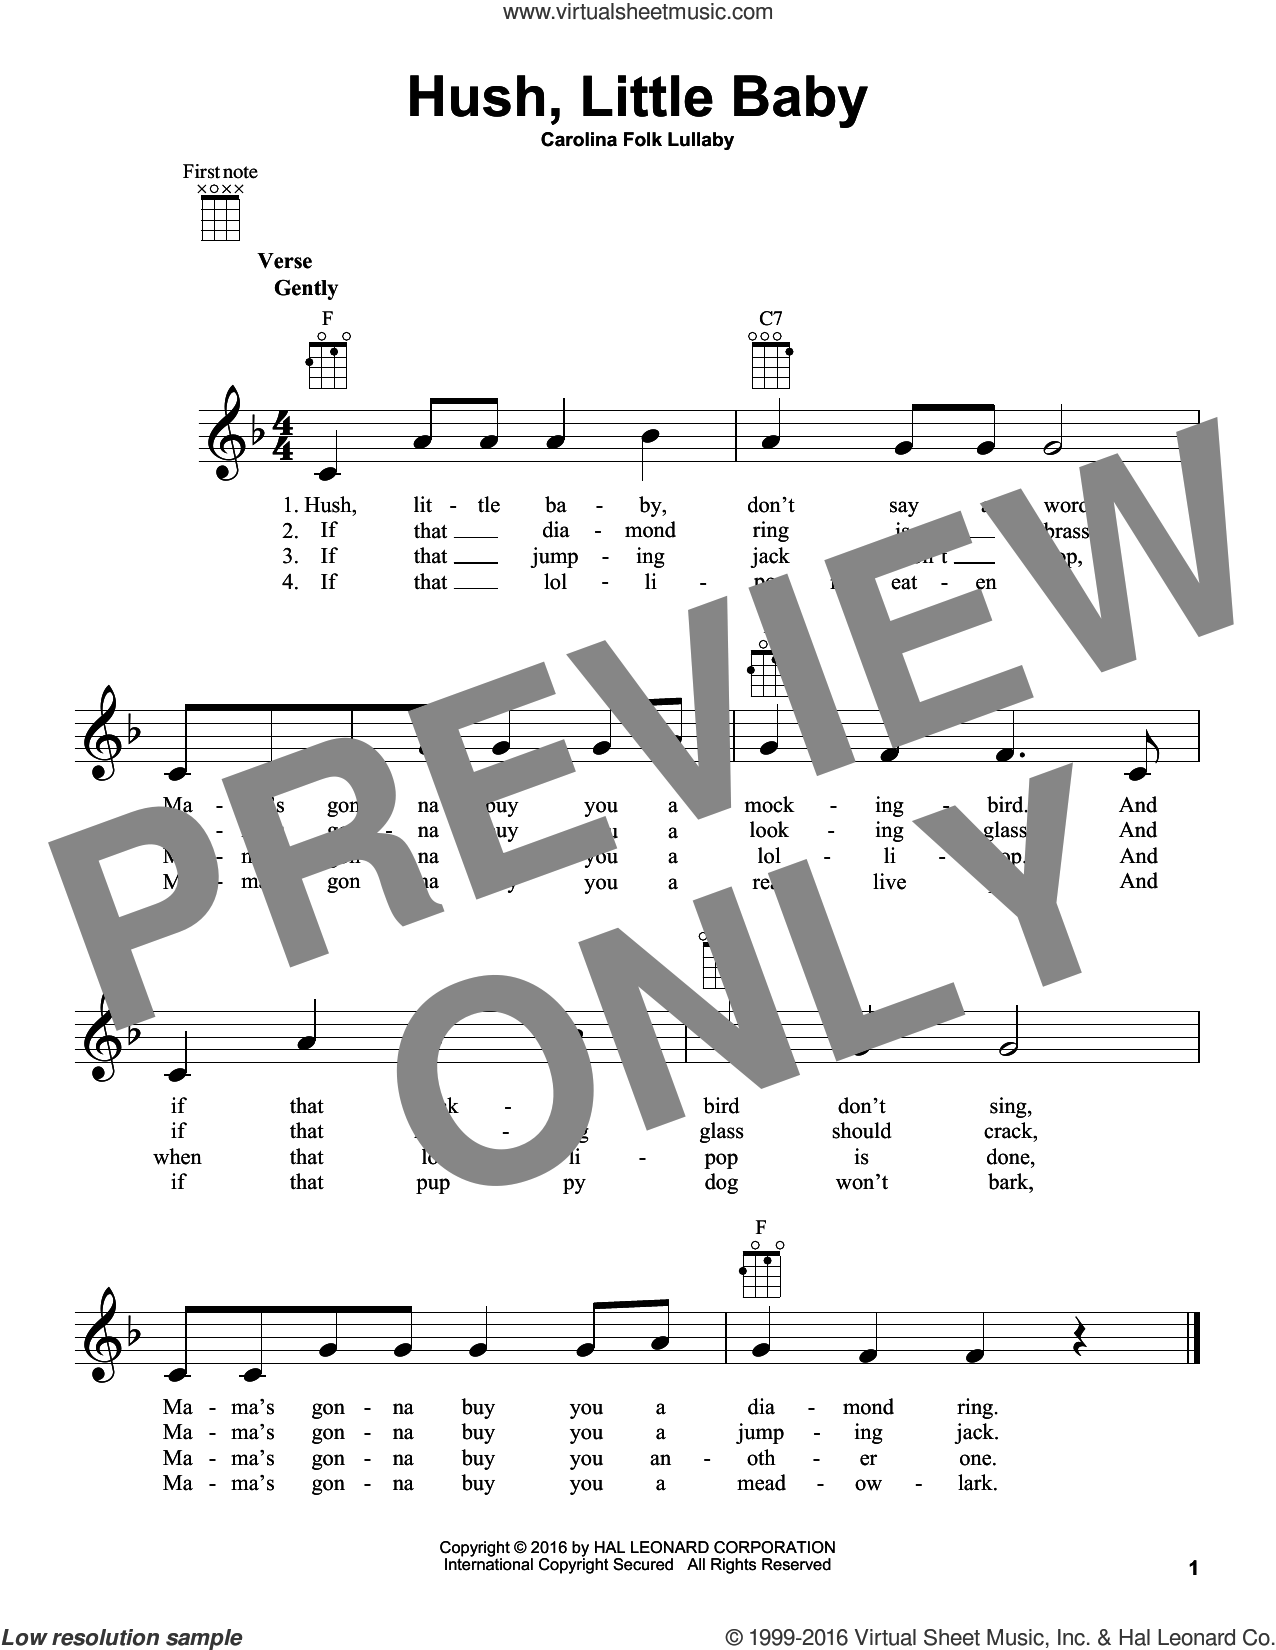 Hush, Little Baby sheet music for ukulele by Carolina Folk Lullaby, intermediate skill level